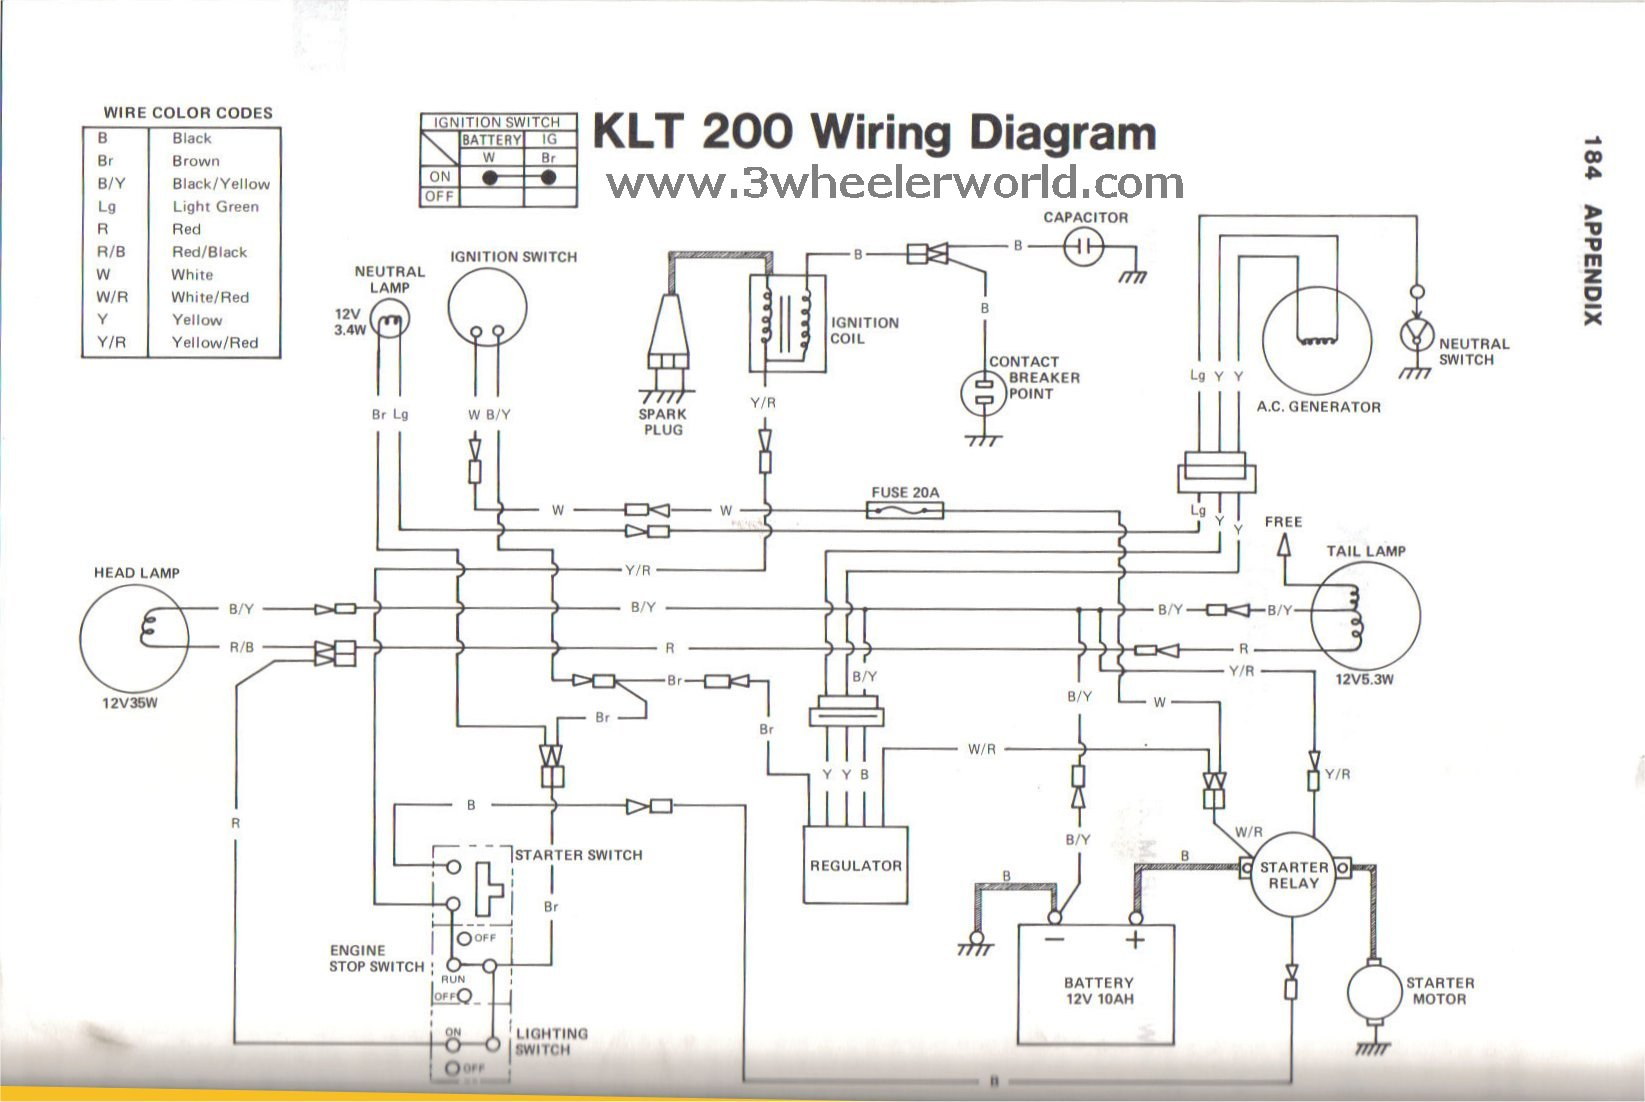 hight resolution of kdx 200 wiring diagram trusted wiring diagram online 2001 kdx 200 kawasaki 1986 kdx 200 wiring